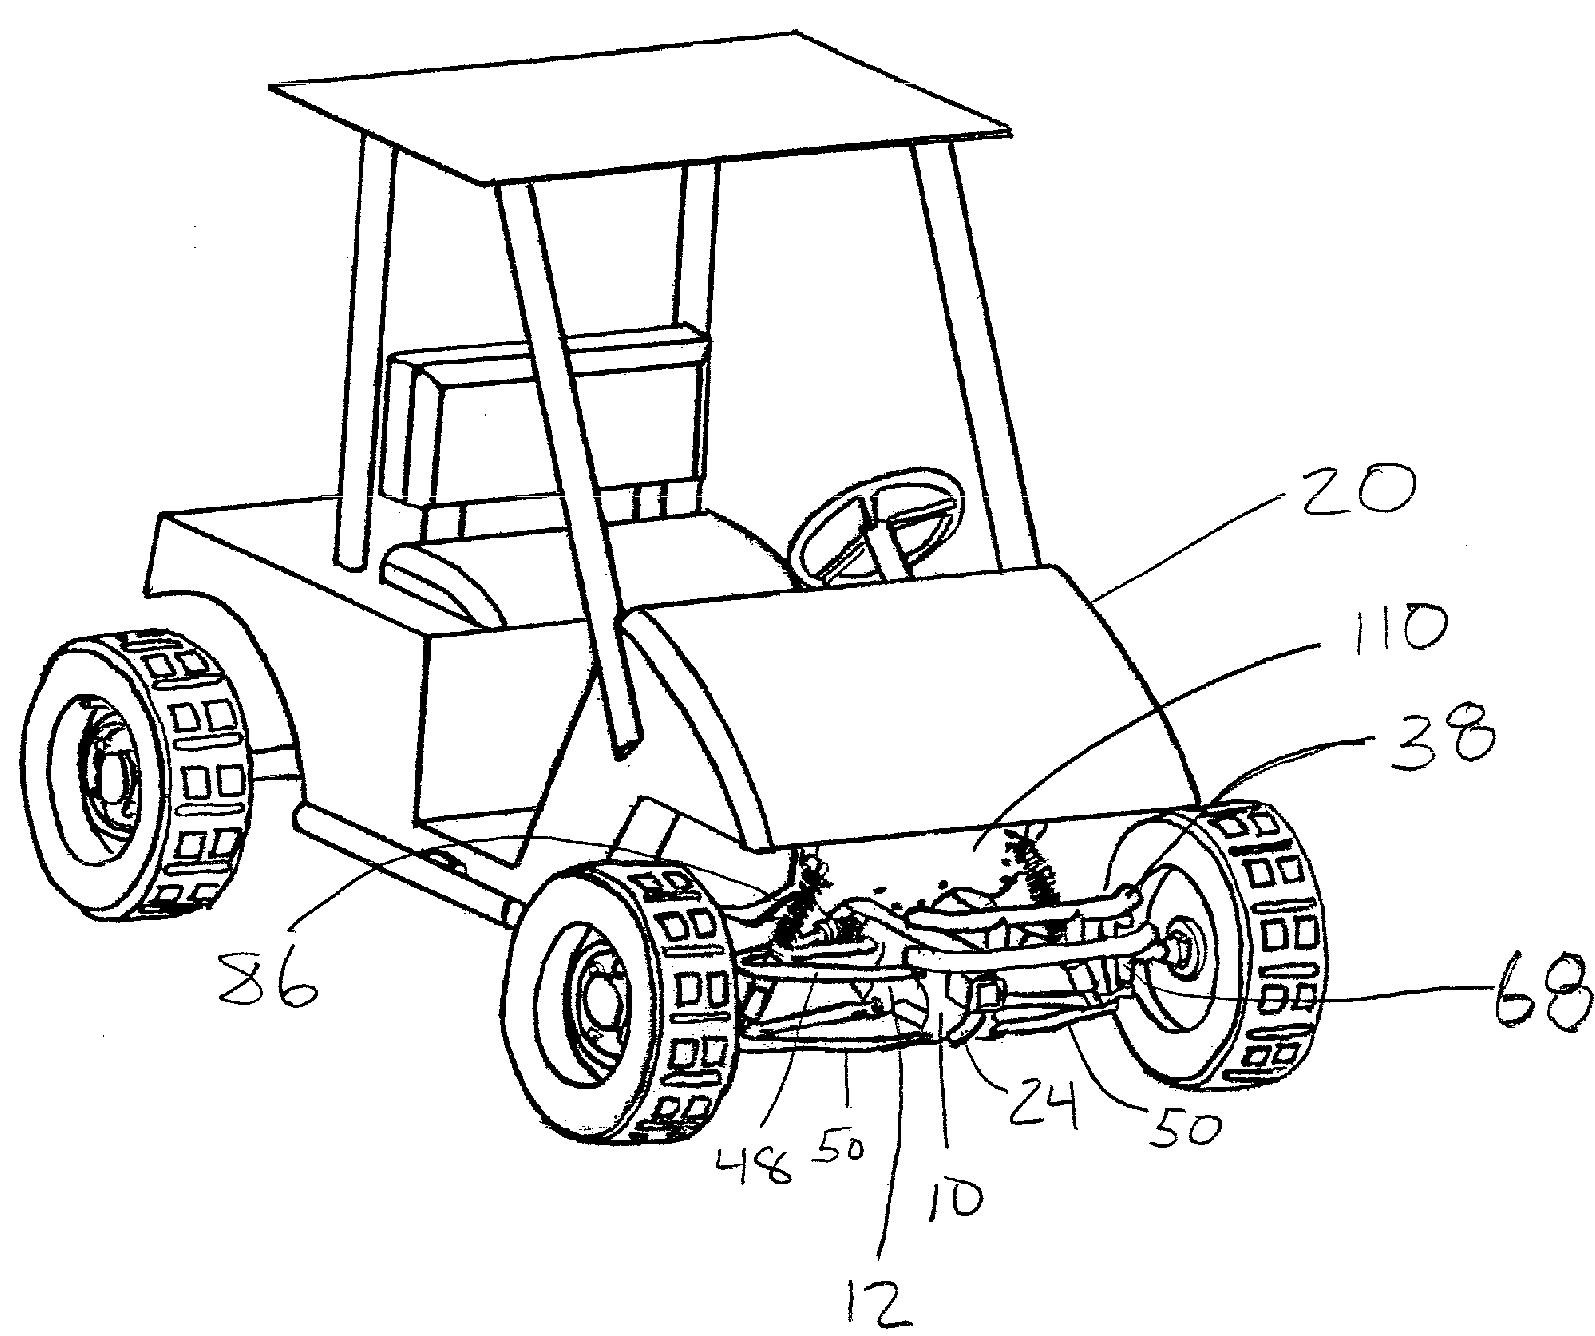 rear car suspension diagram just what every golf cart